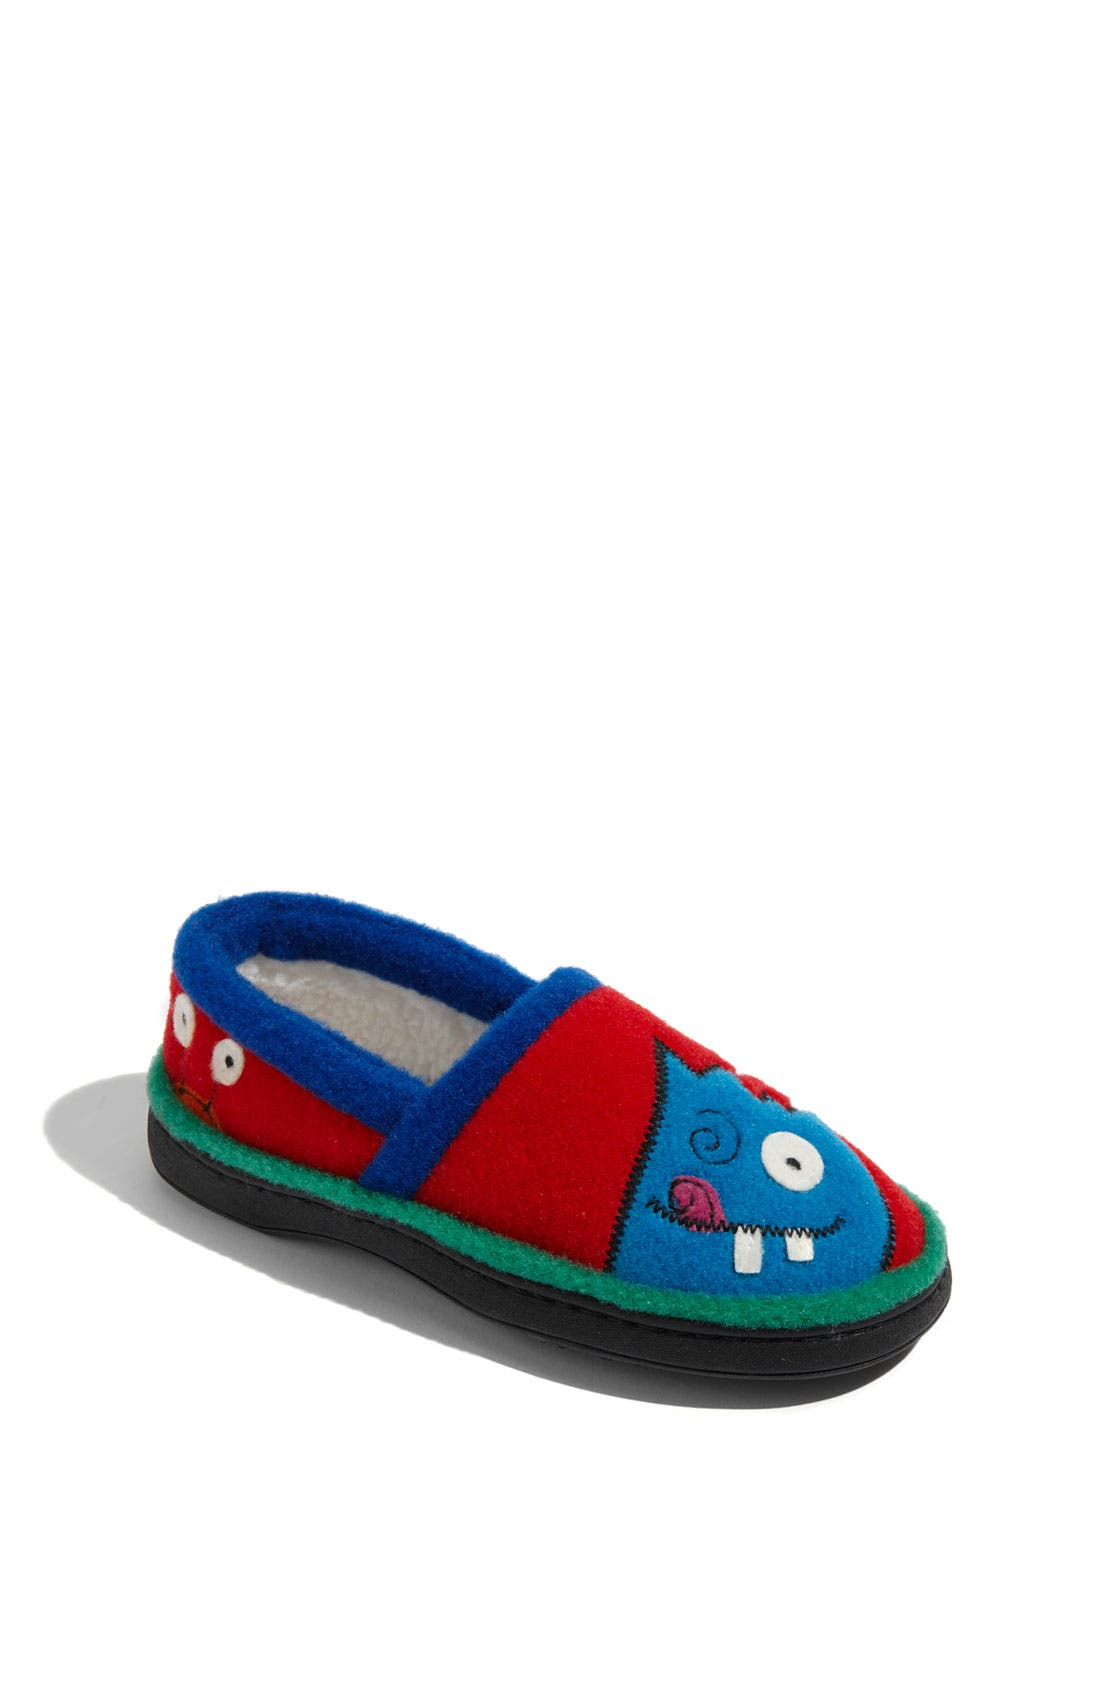 Main Image - Acorn 'Monster Moc' Slipper (Toddler, Little Kid & Big Kid)